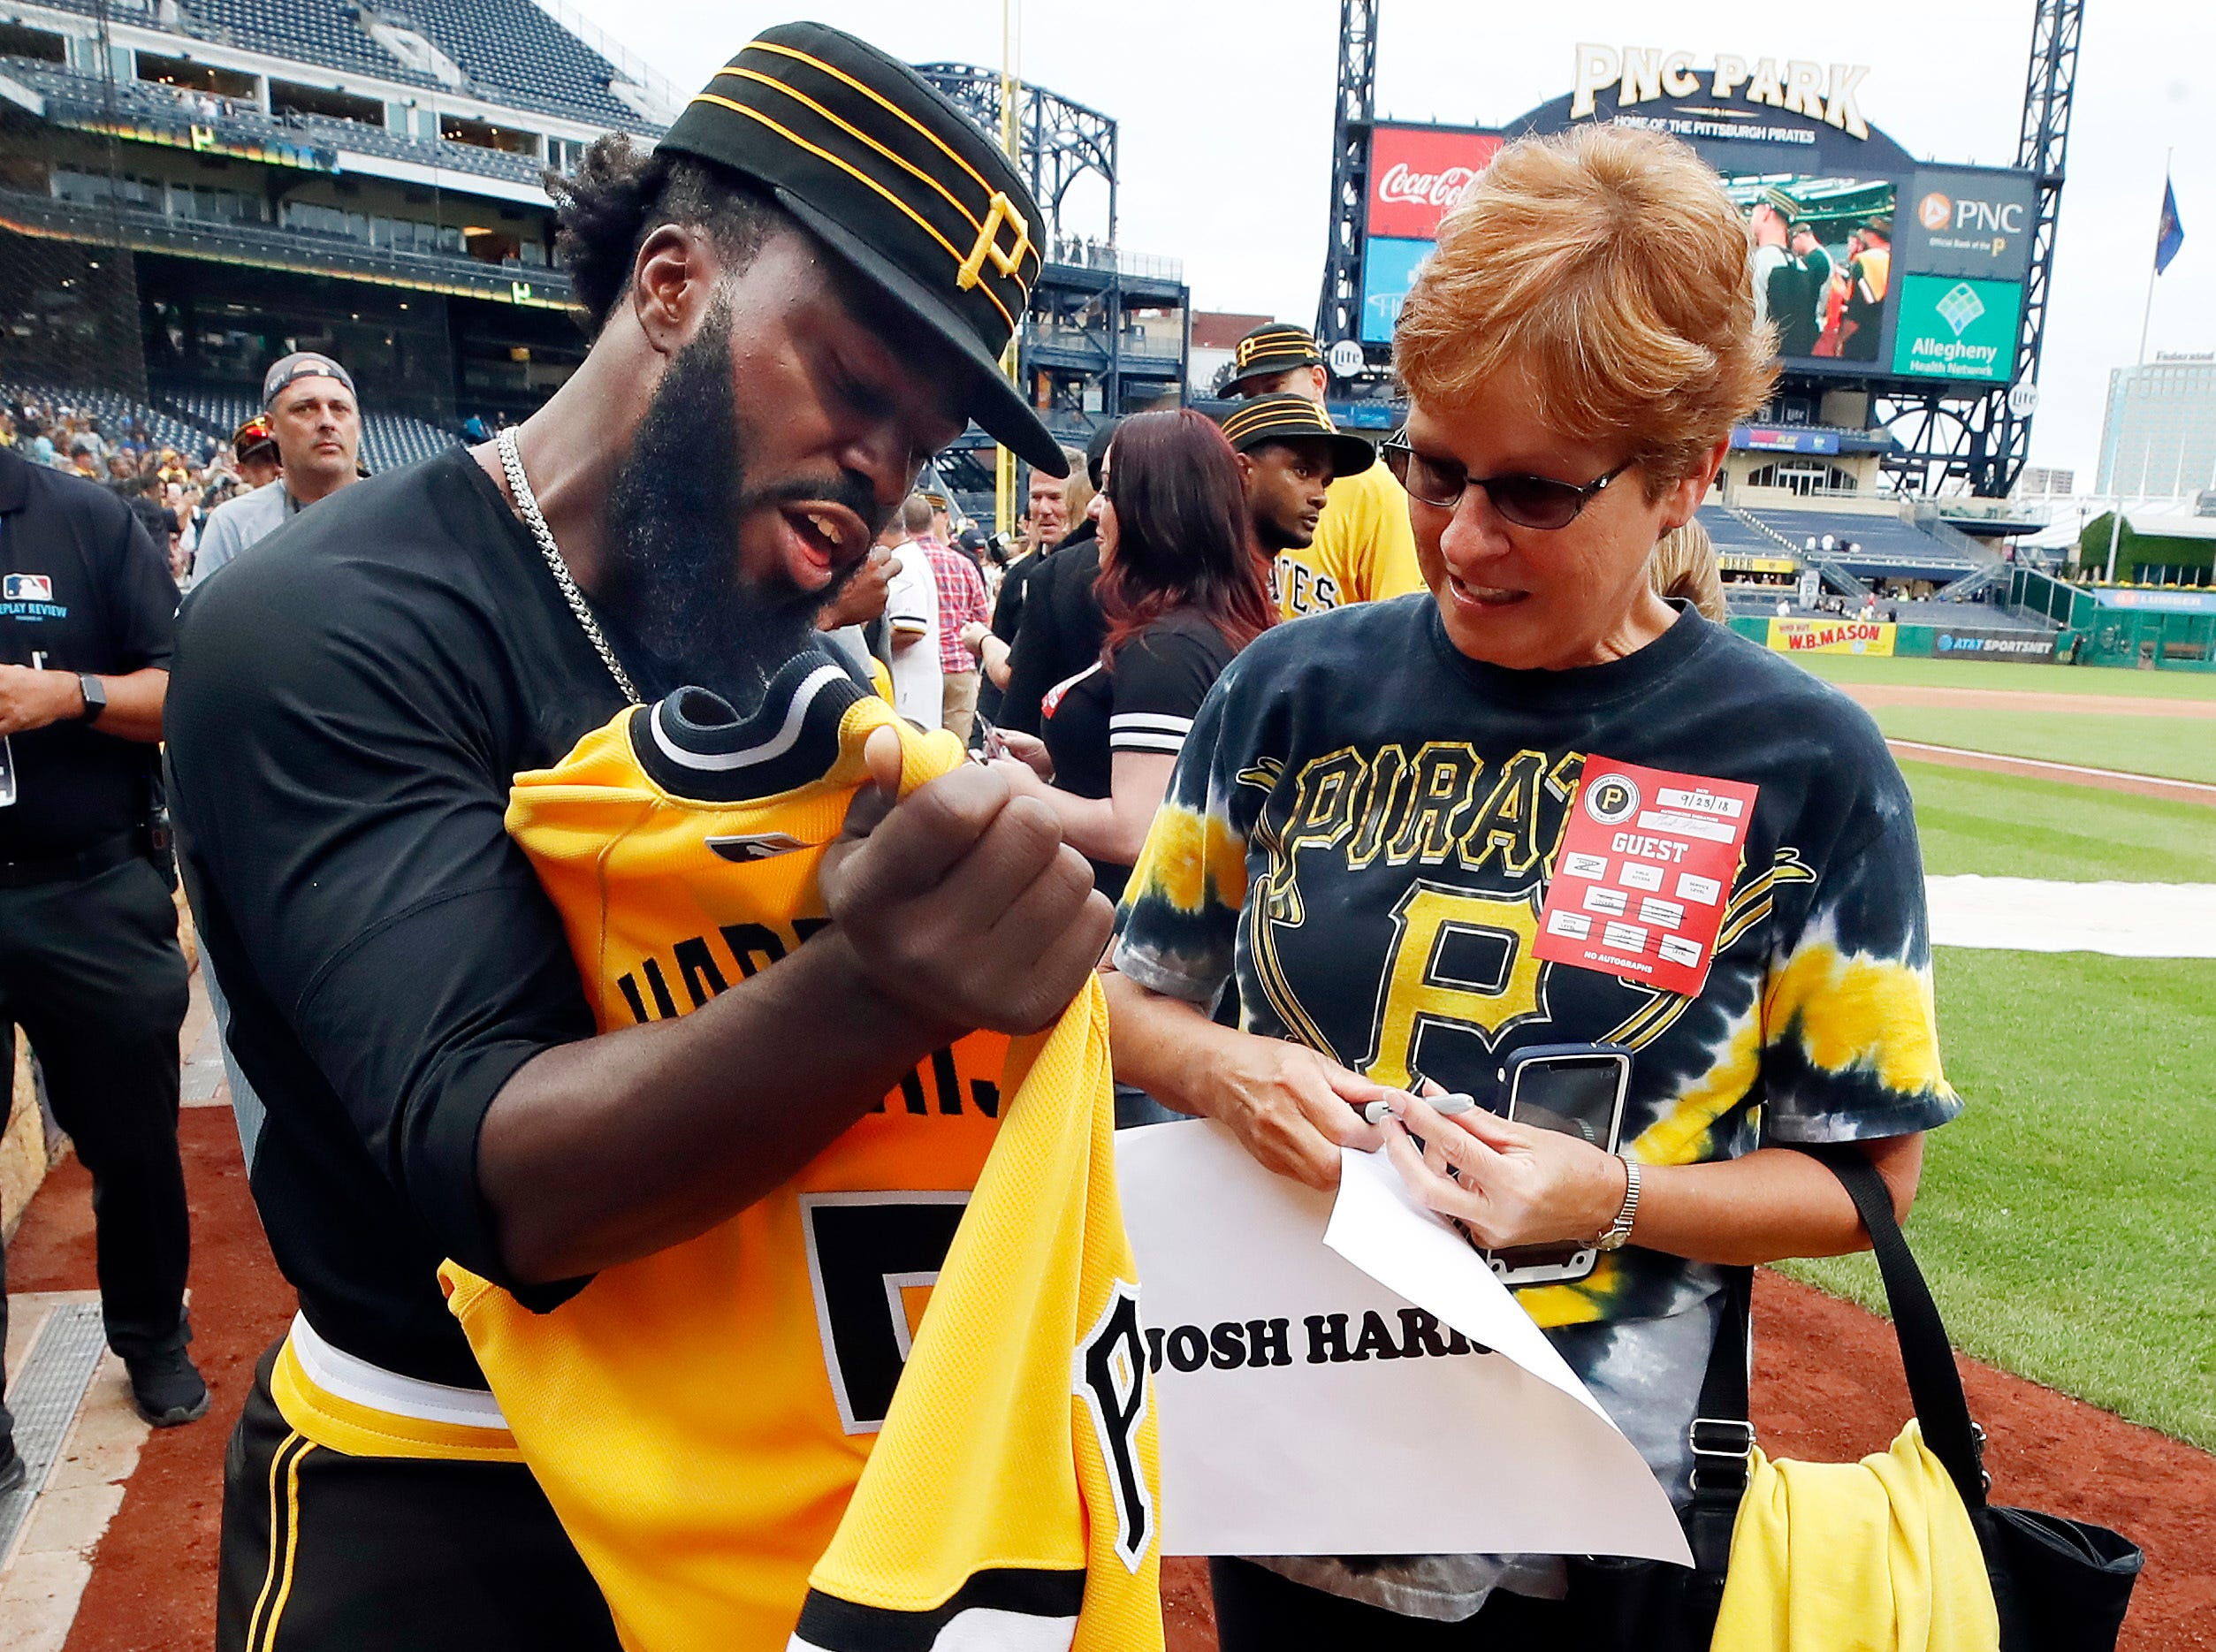 Pittsburgh Pirates' Josh Harrison gives his jersey to a fan after a loss to the Milwaukee Brewers in the last baseball game of the season at PNC Park in Pittsburgh, Sunday, Sept. 23, 2018.